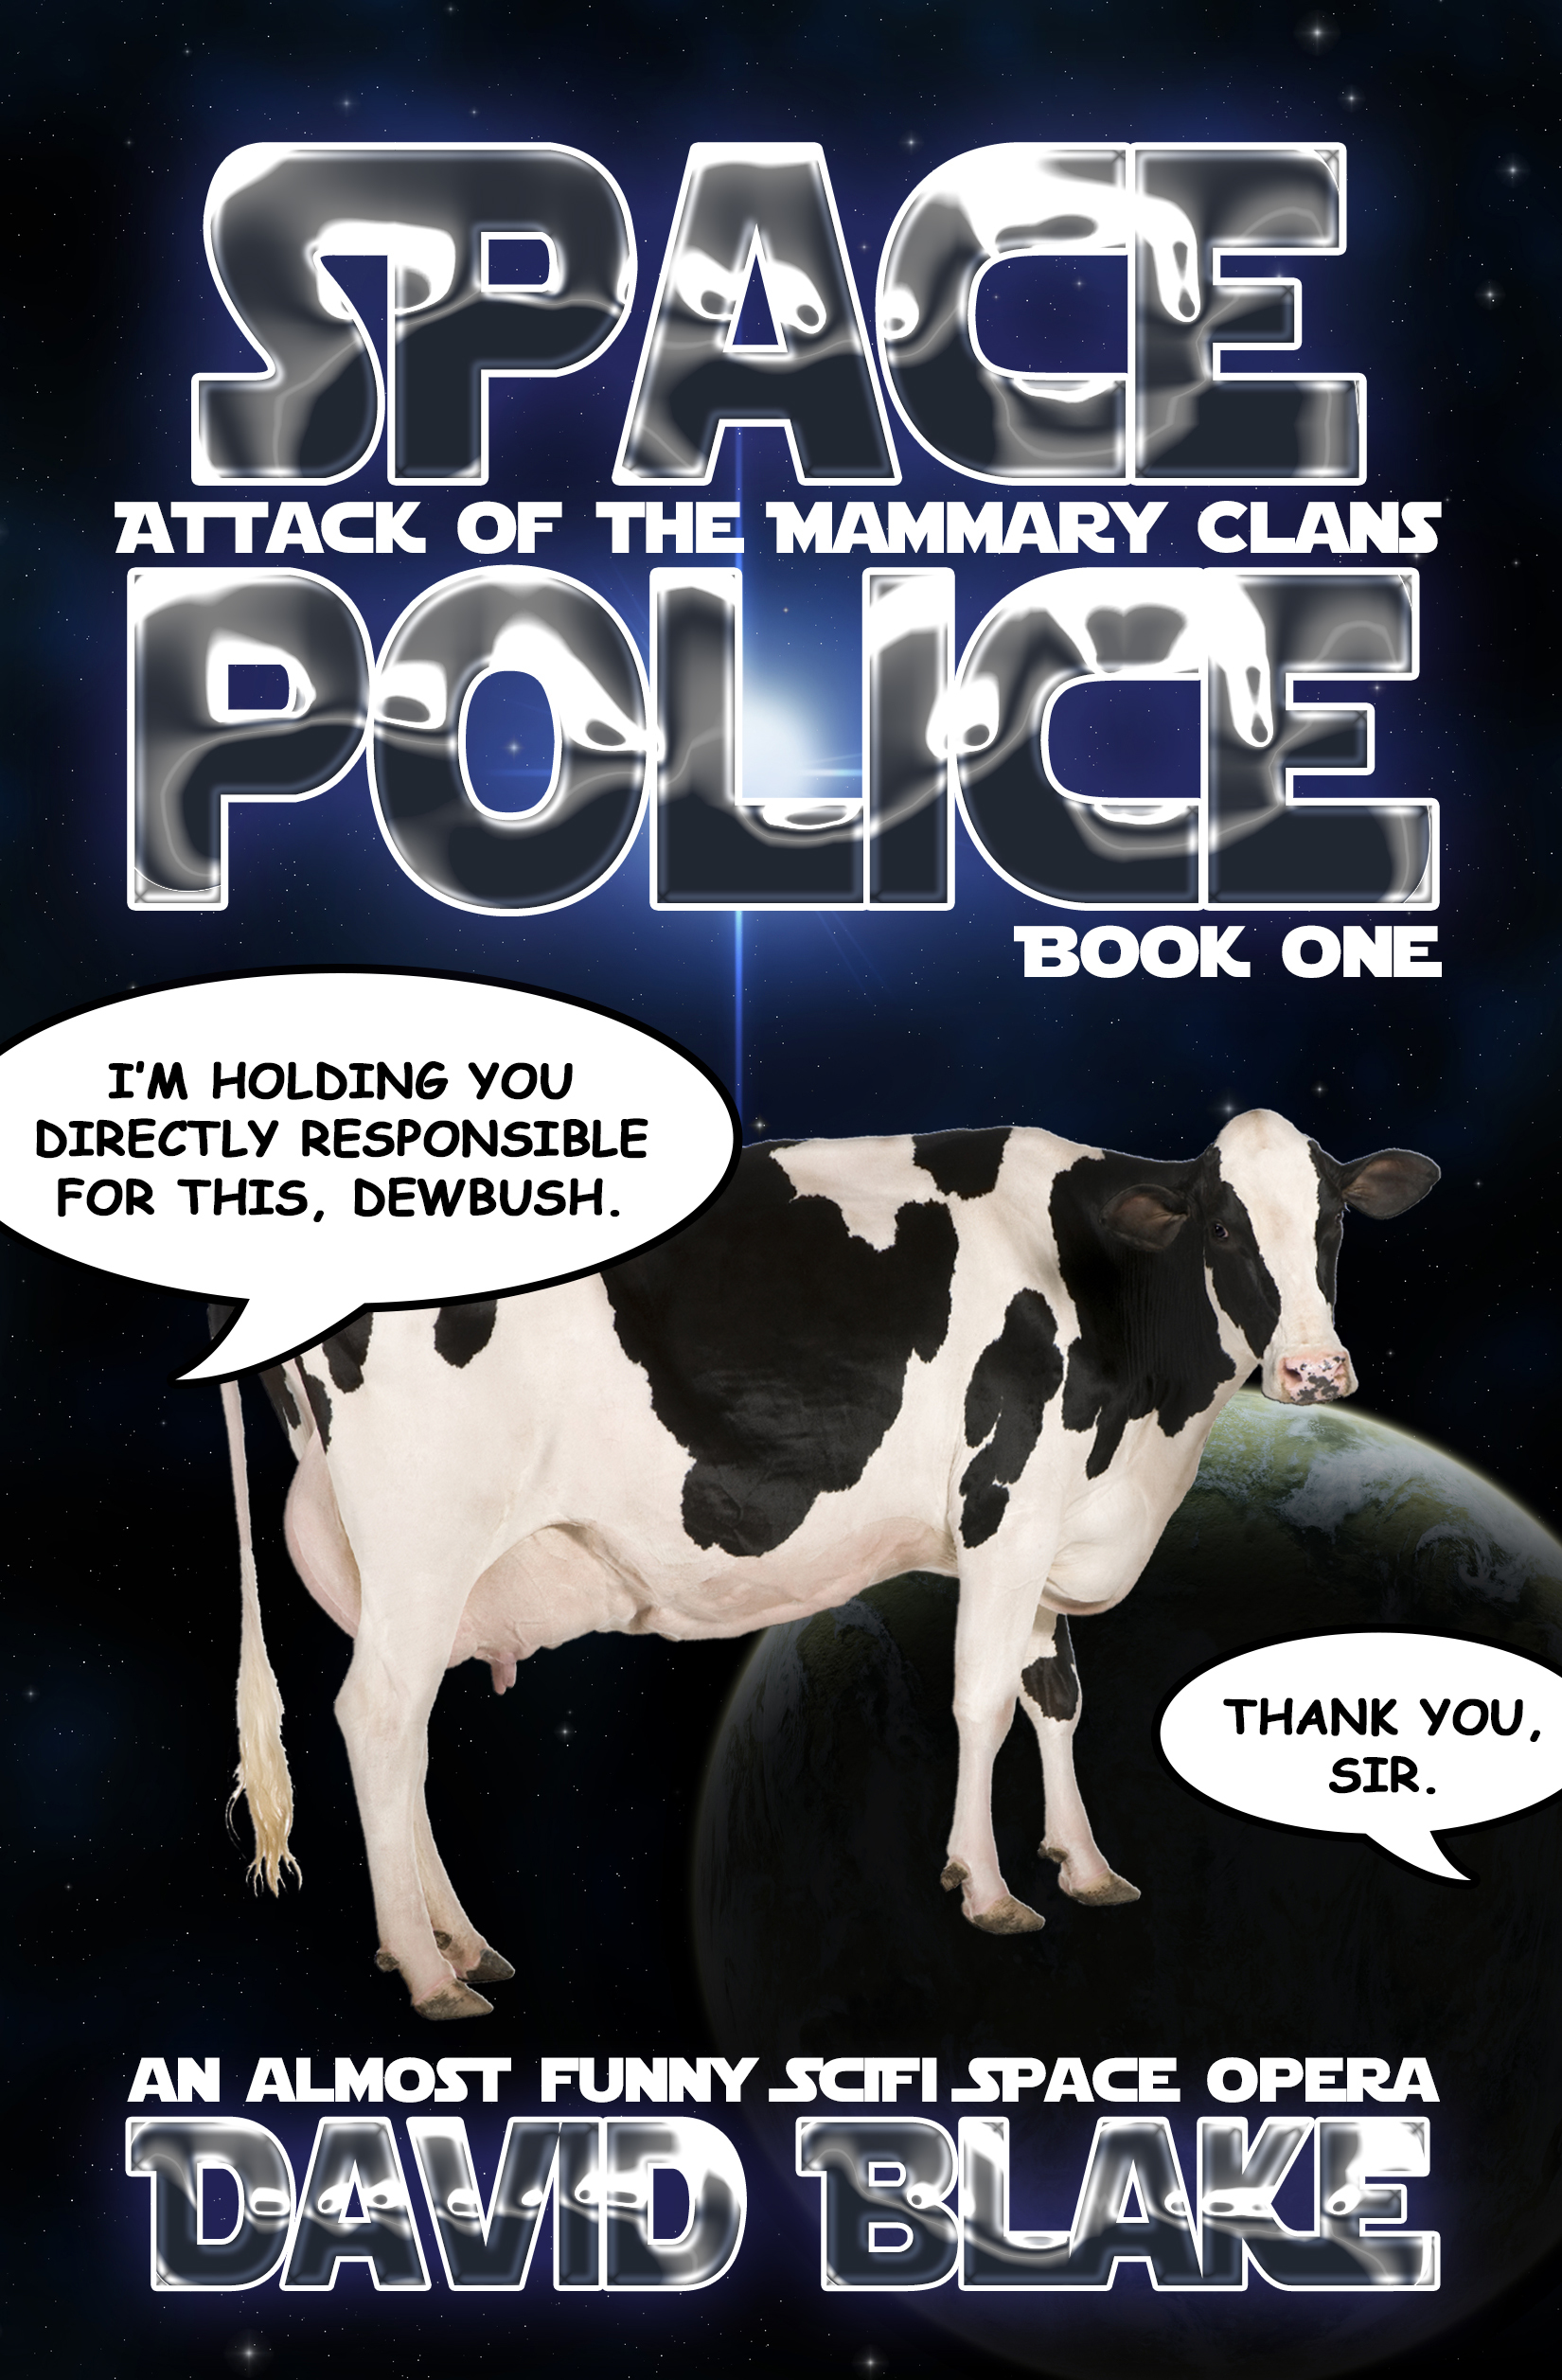 Attack of the Mammary Clans (Space Police #1)